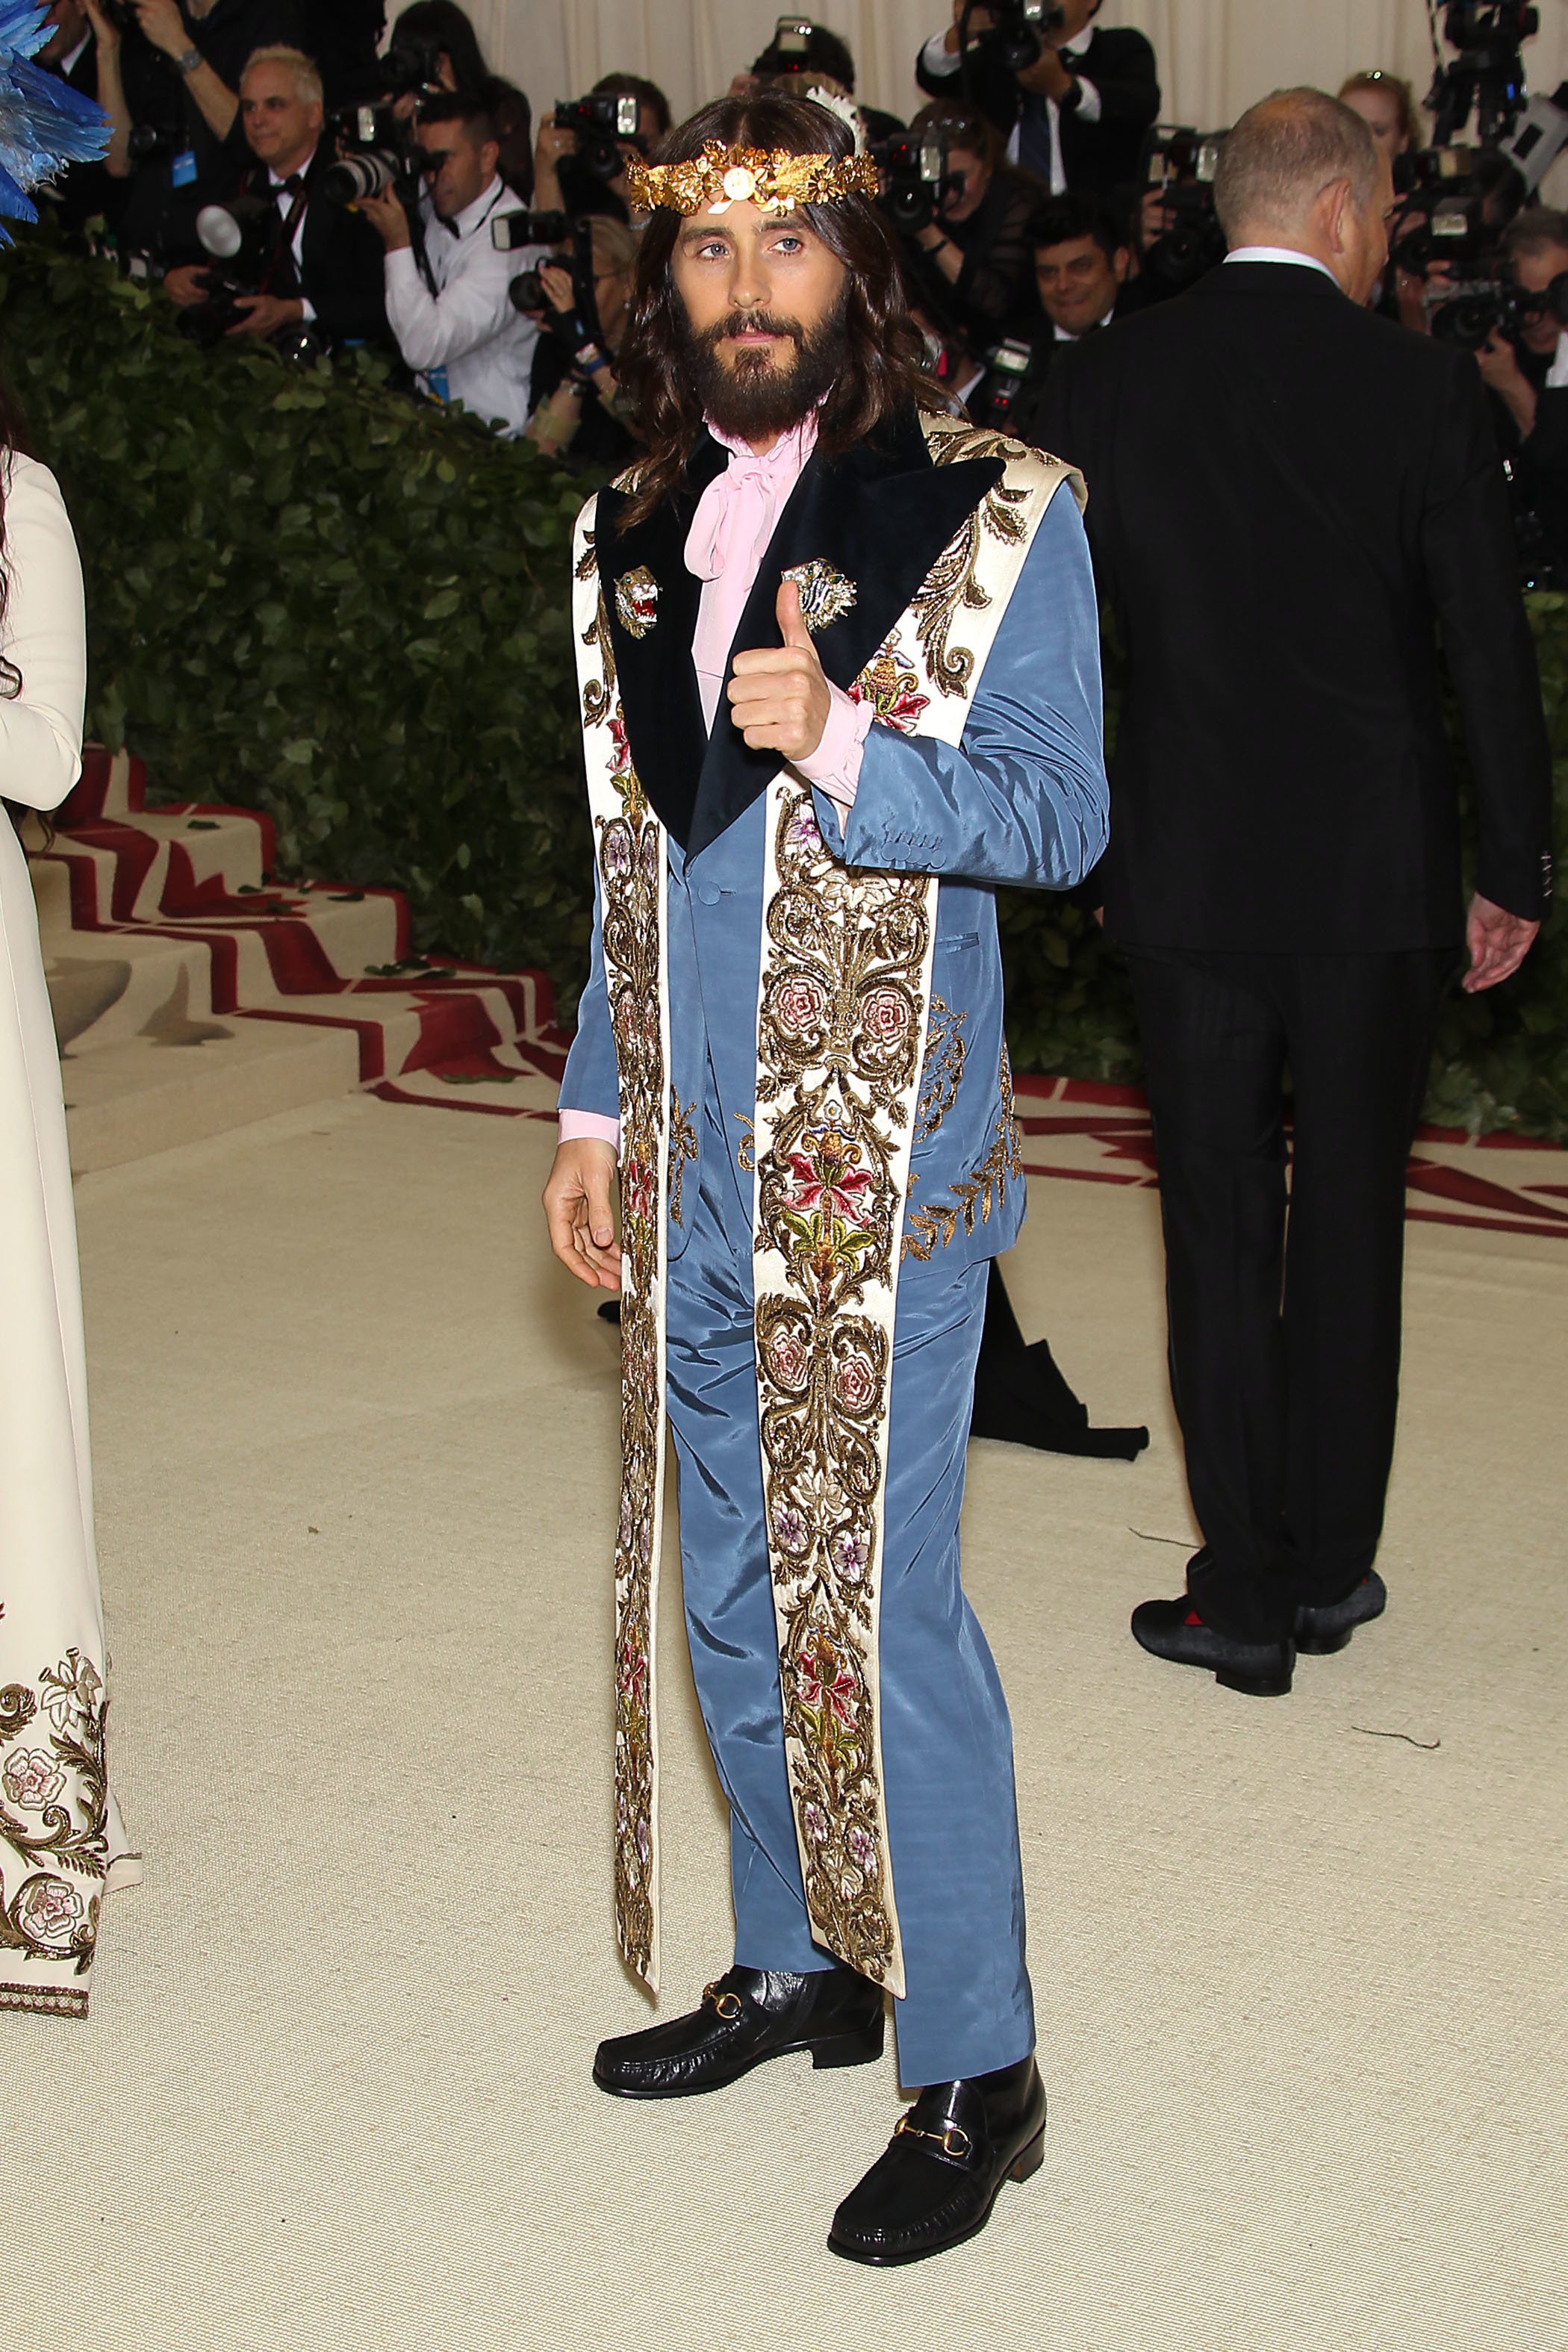 Jared Leto attends The Metropolitan Museum of Art's Costume Institute Benefit celebrating the opening of Heavenly Bodies: Fashion and the Catholic Imagination in New York City on May 7, 2018.